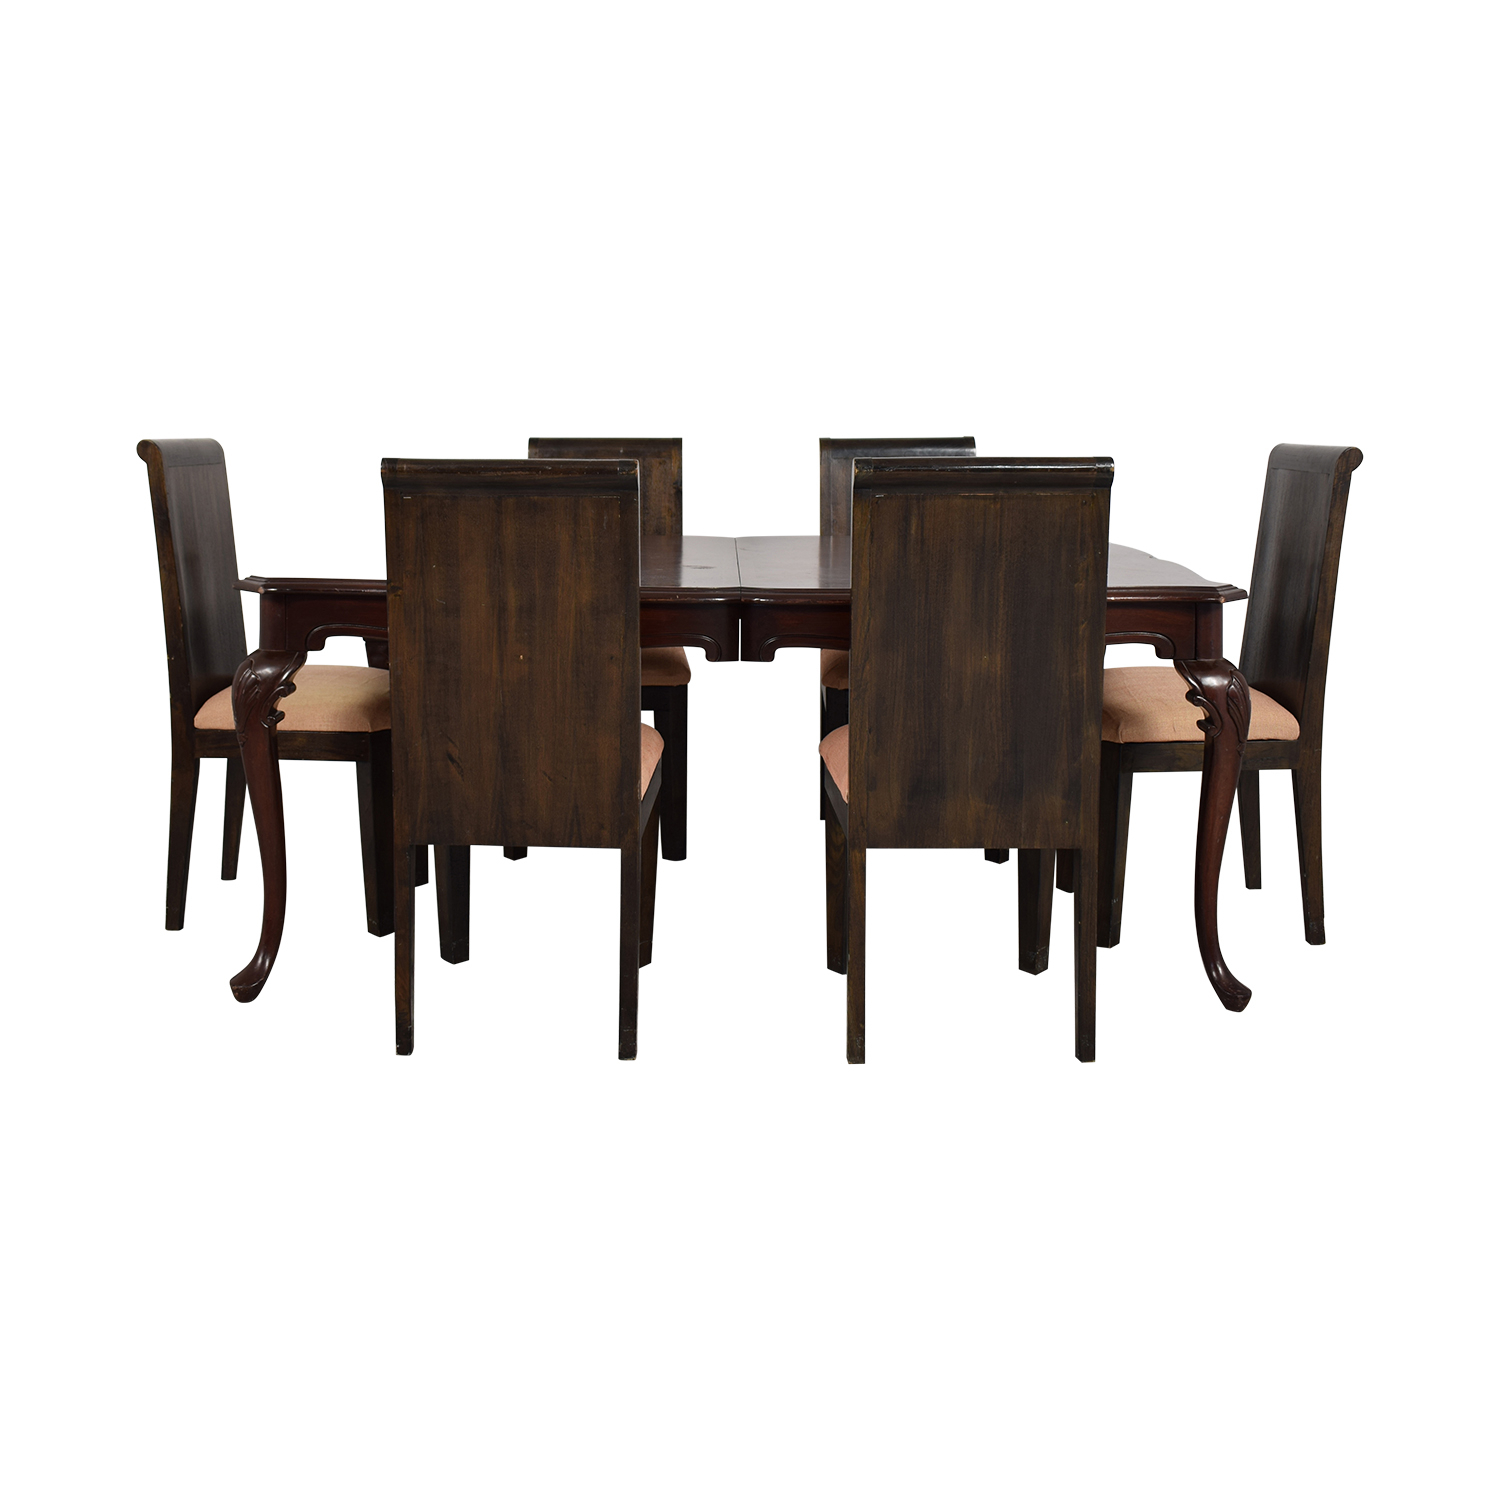 89% Off – Ethan Allen Ethan Allen Livingston Dining Set / Tables In Recent Brown Wash Livingston Extending Dining Tables (View 16 of 25)